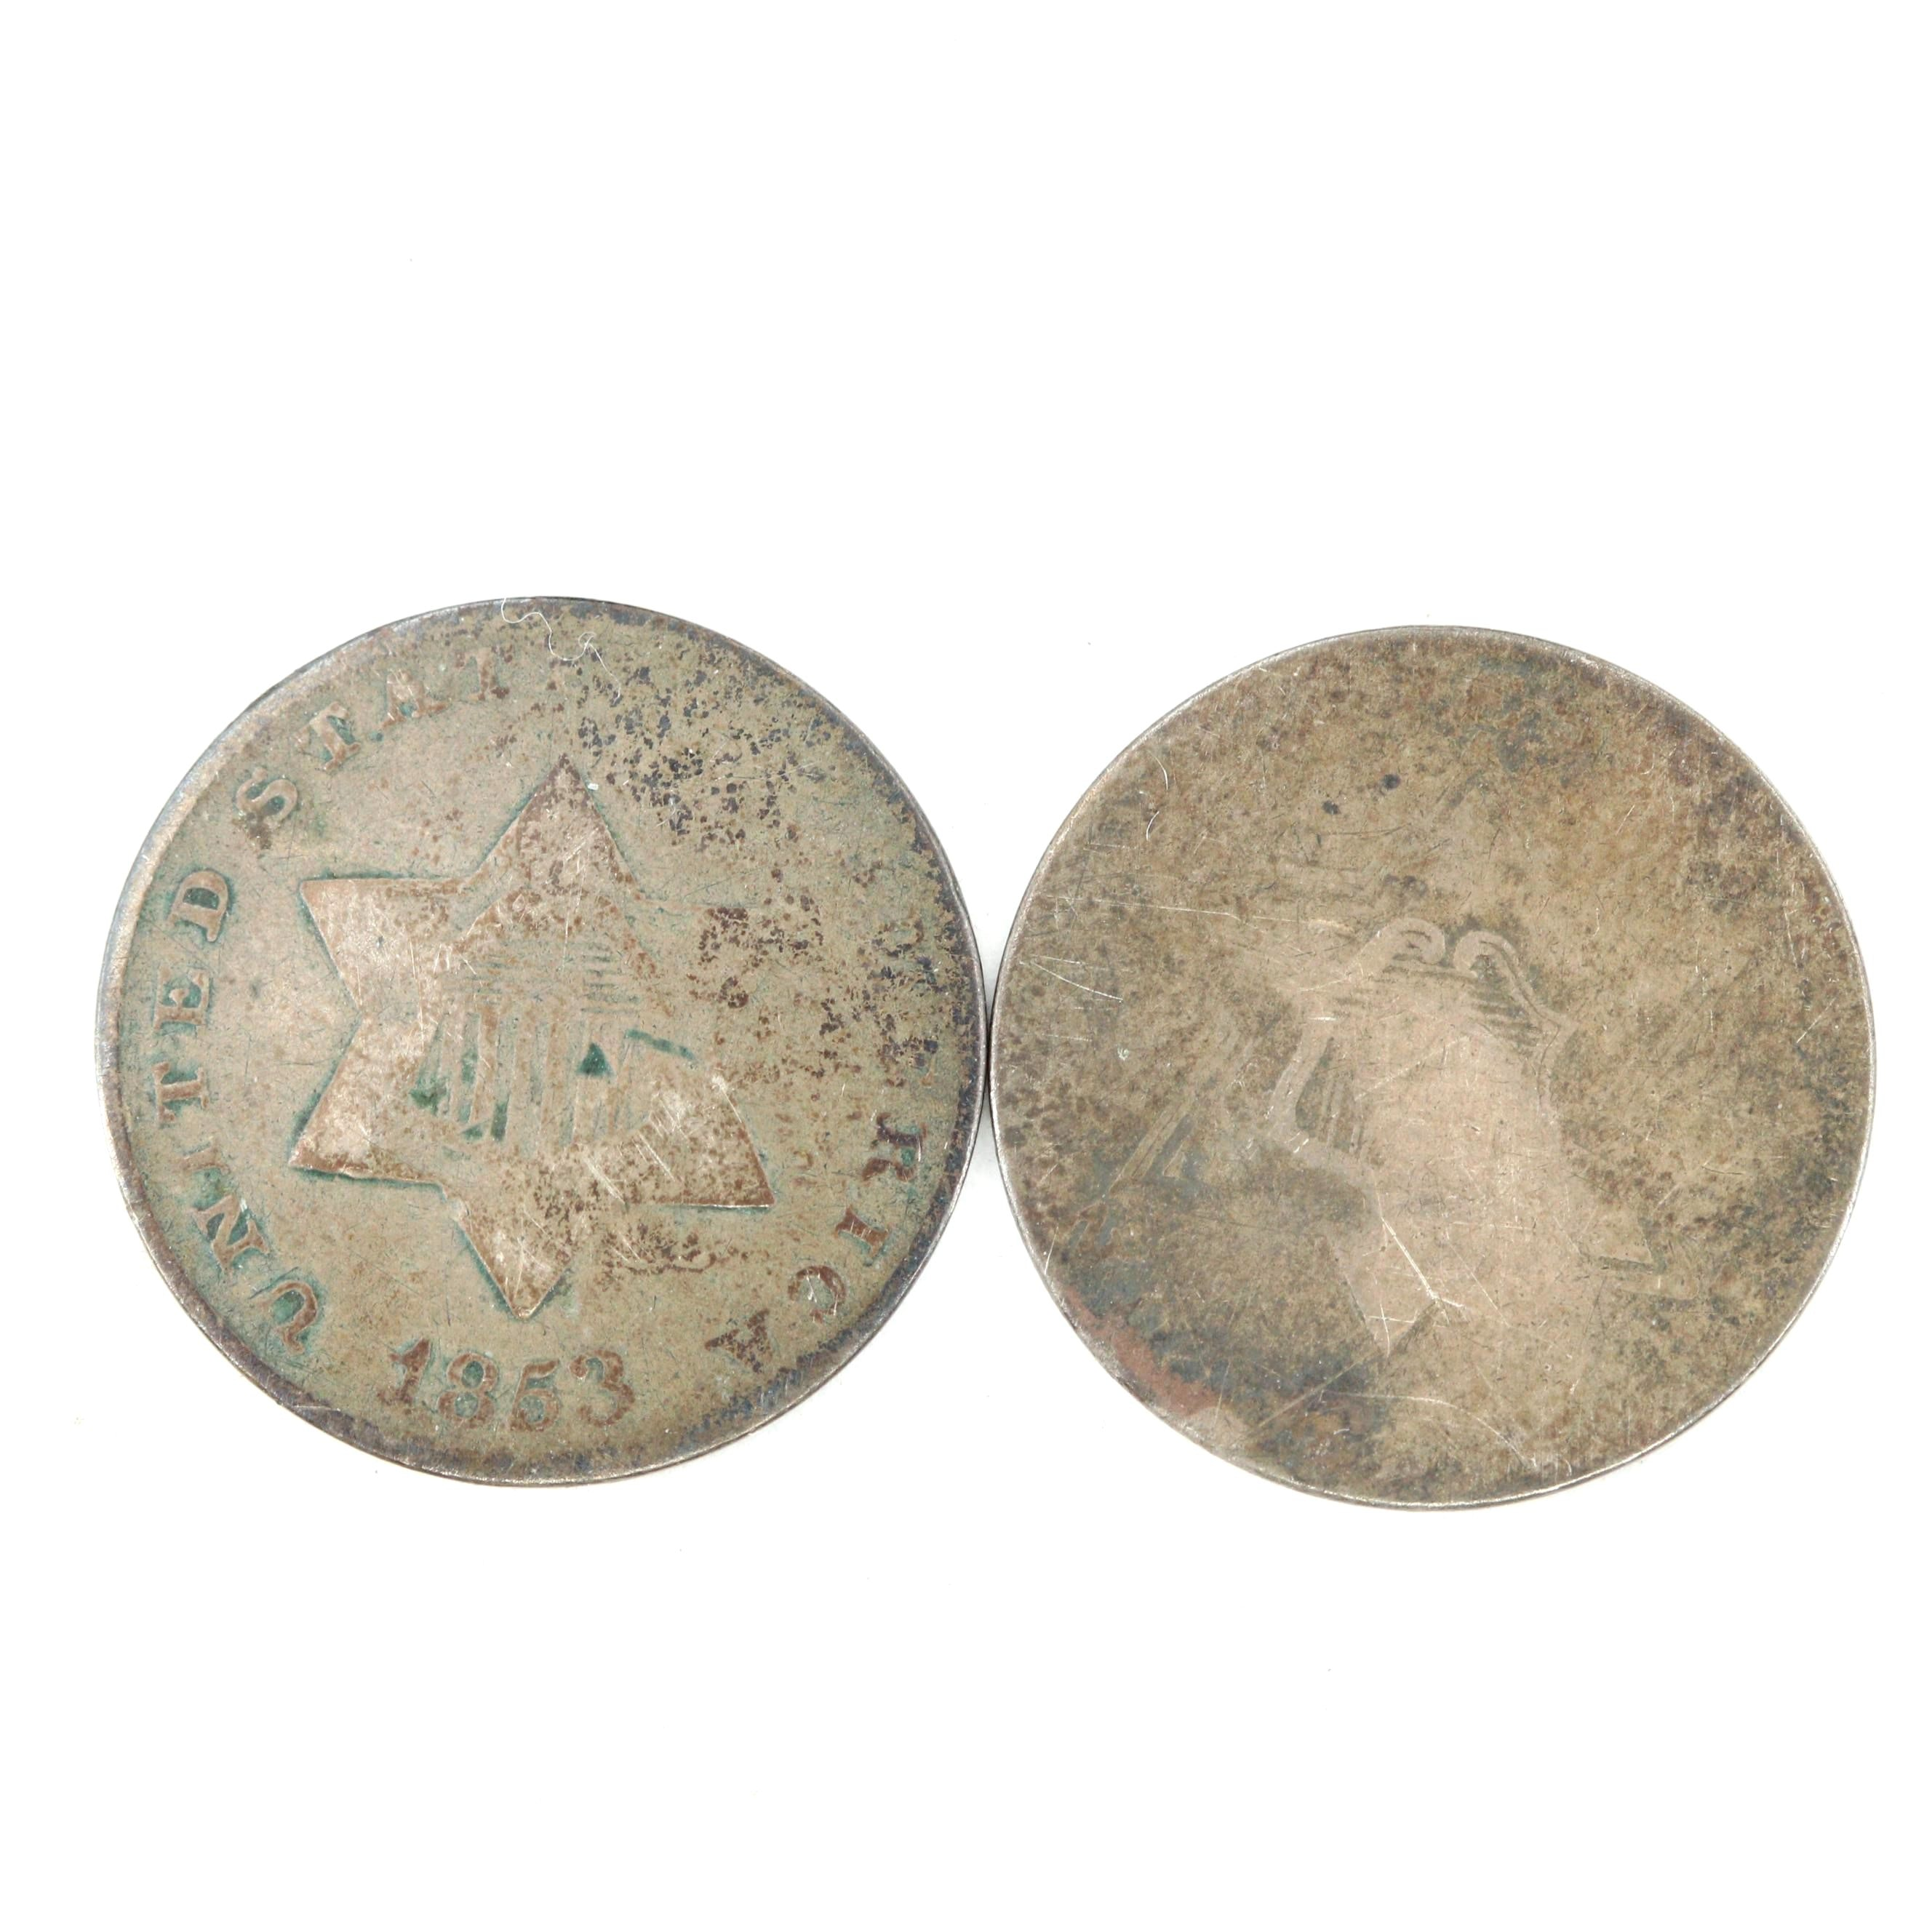 Two Silver Three Cent Coins Featuring an 1853